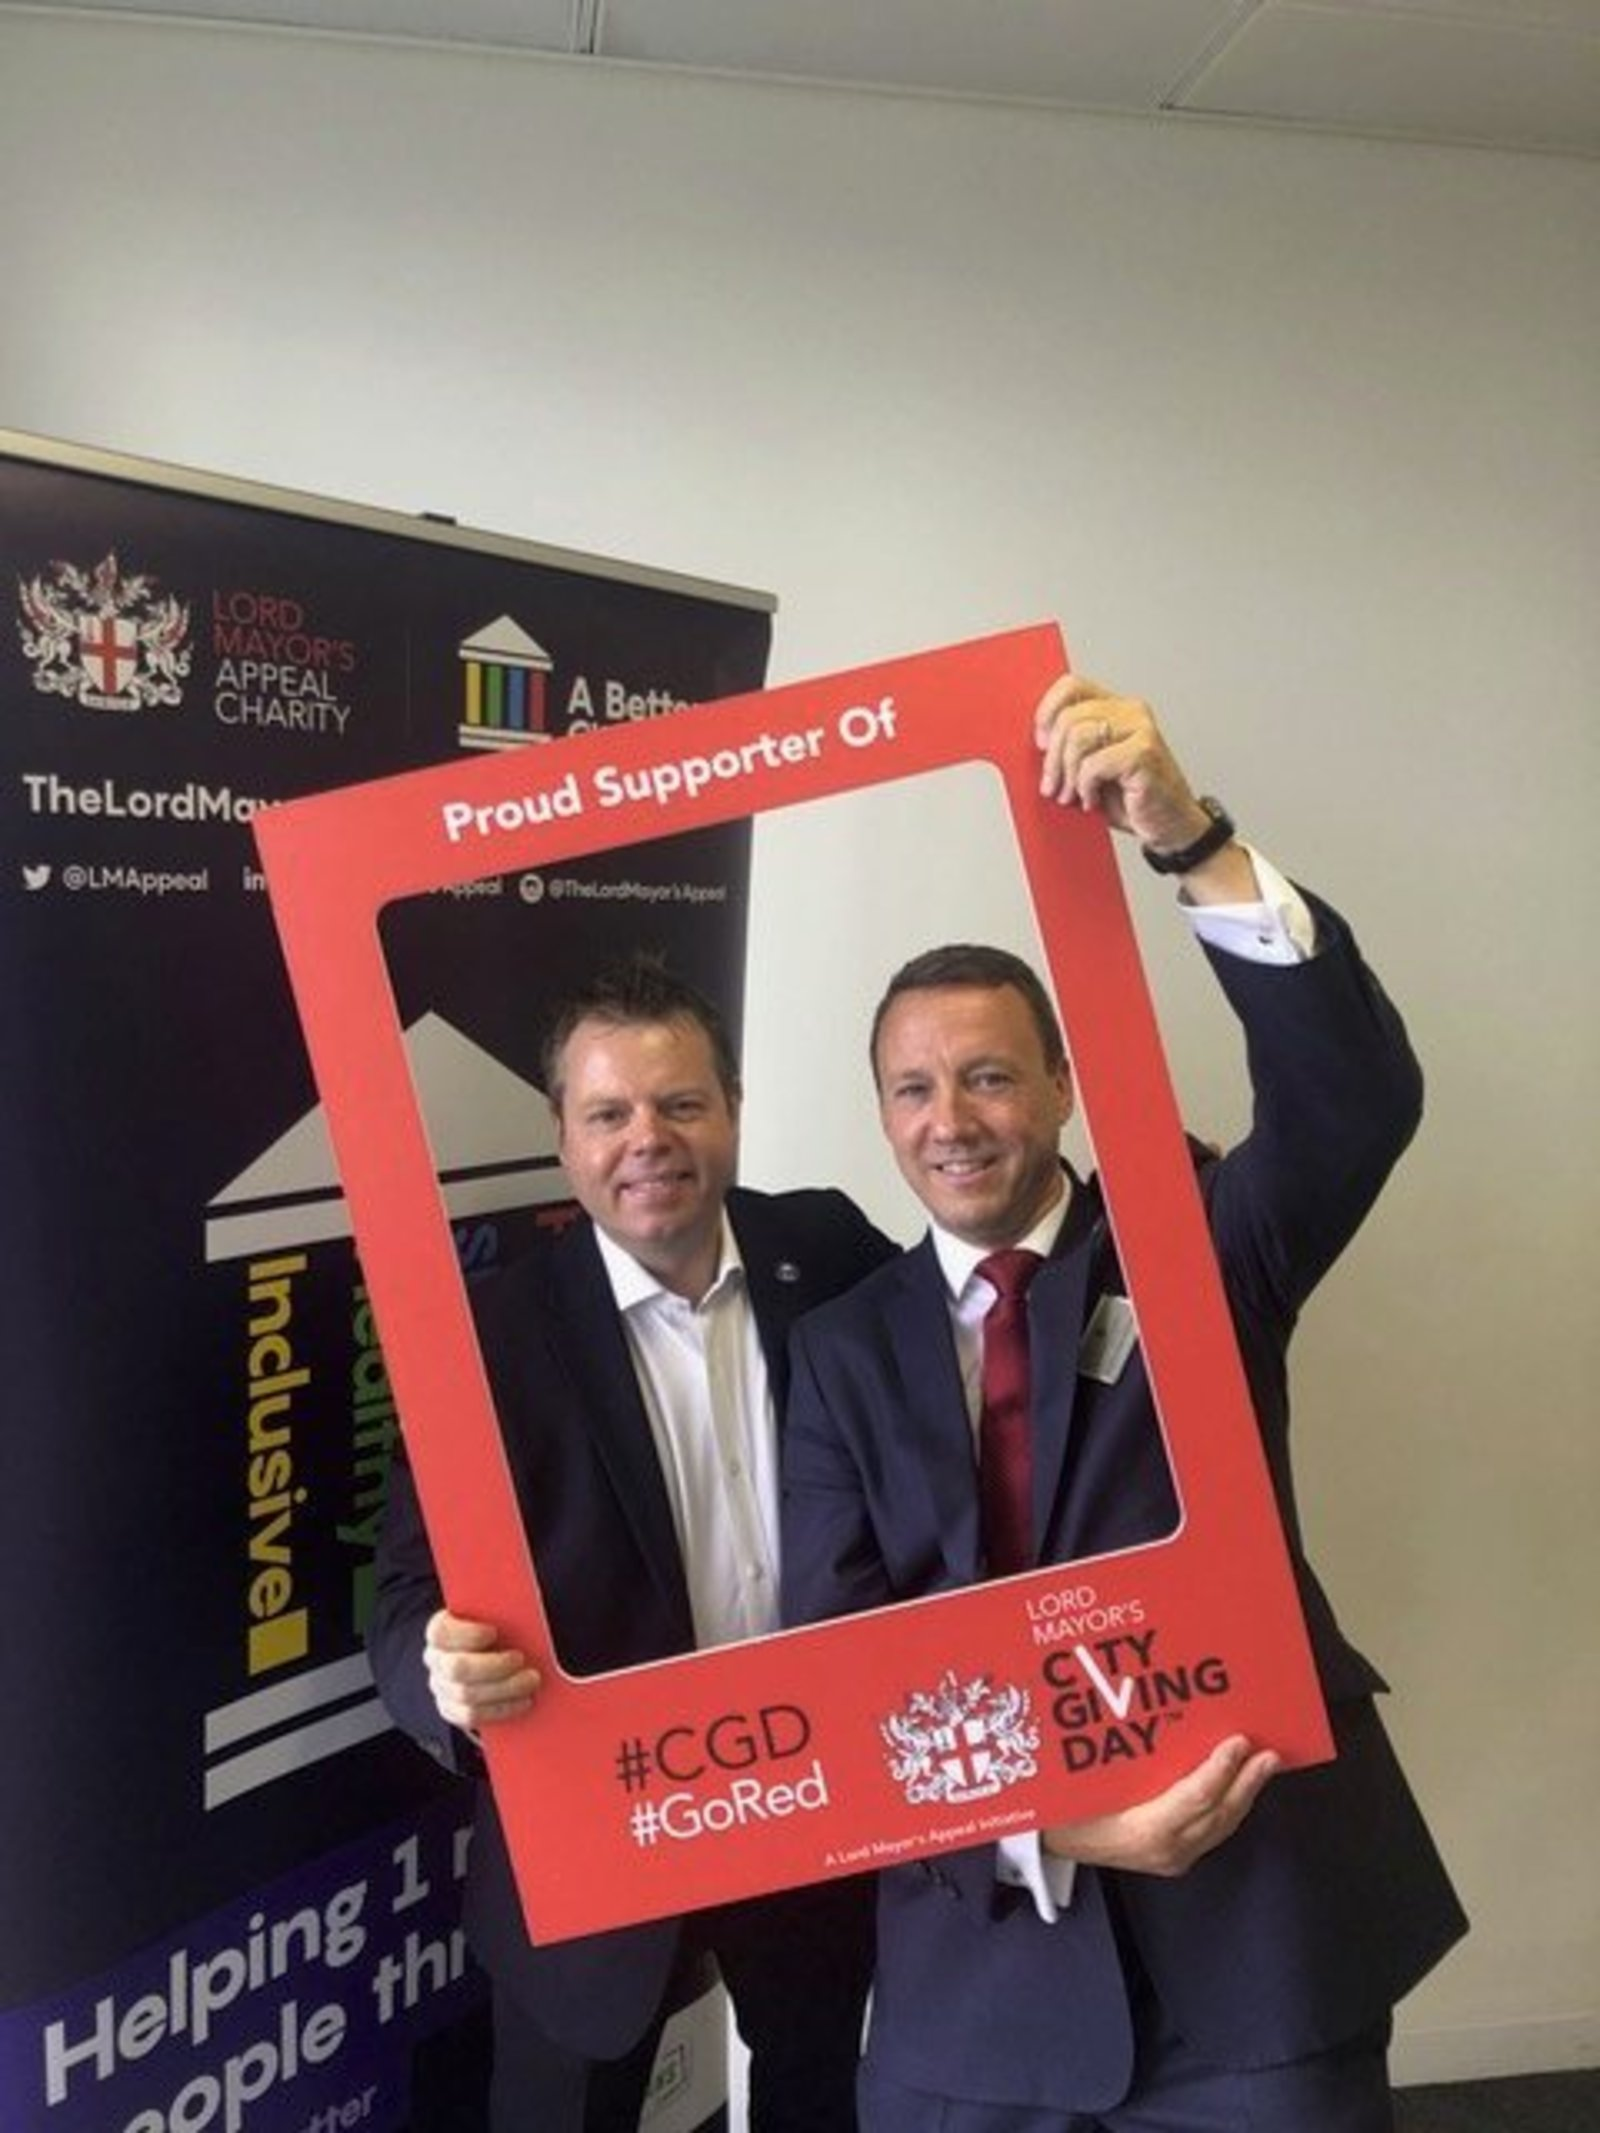 Lord Mayor's Appeal – City Giving Day launch Breakfast